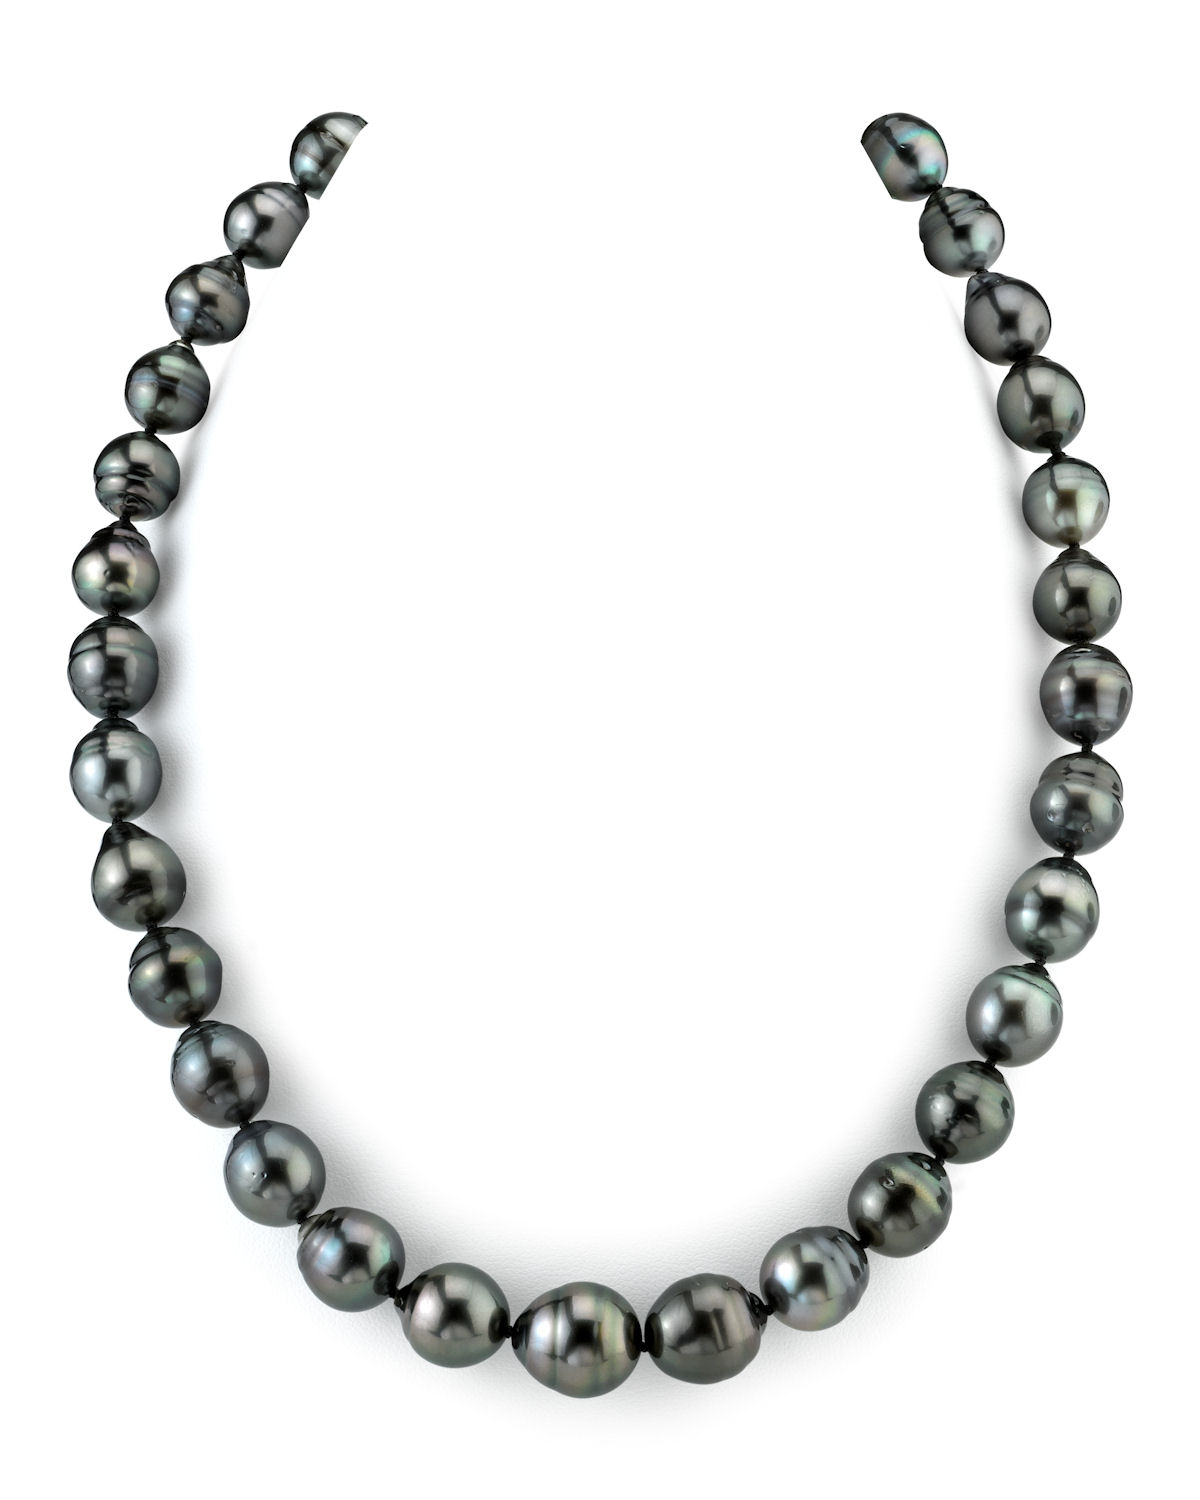 """14K Gold 11-12mm Tahitian South Sea Baroque Cultured Pearl Necklace AAA Quality, 18"""" Length by The Pearl Source"""